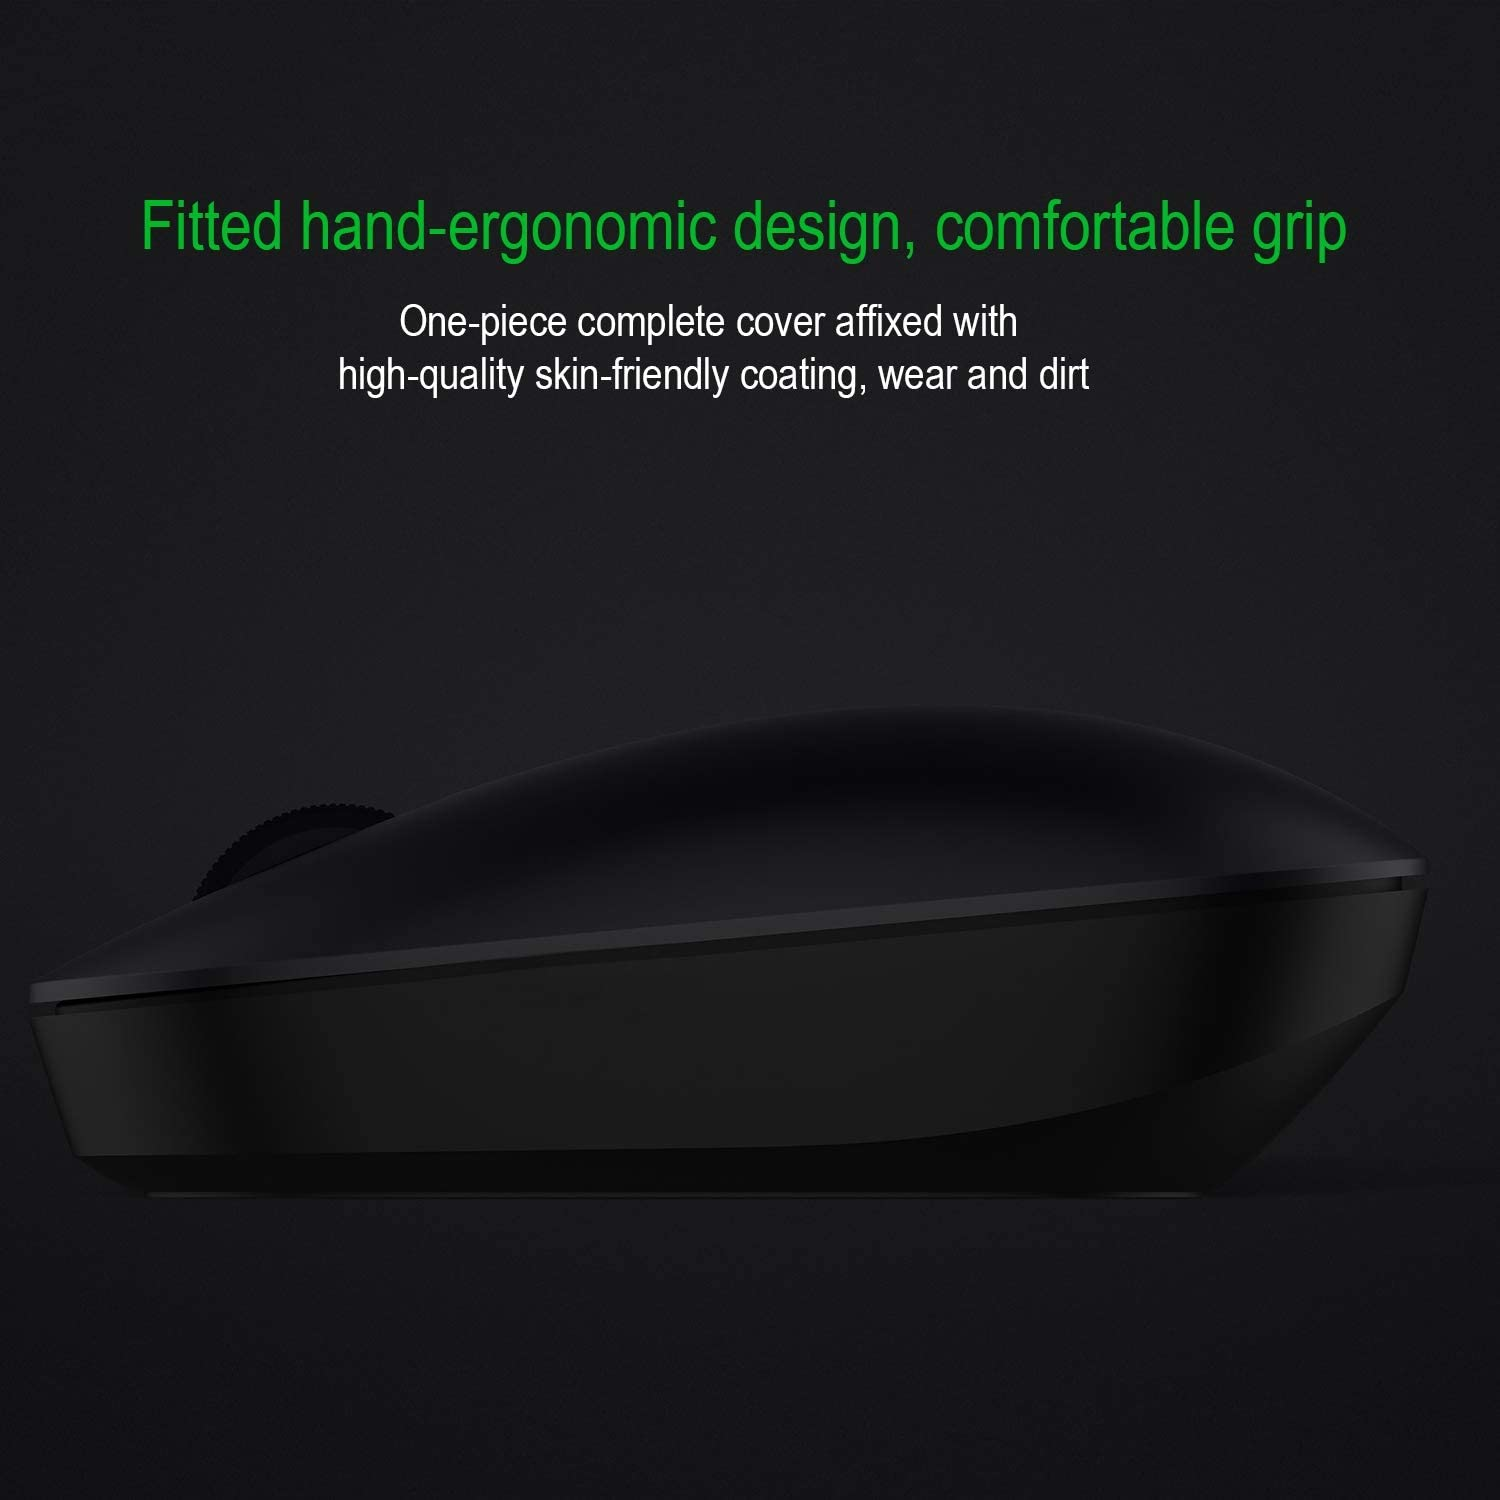 Easy to Connect Laptop//PC//Windows//Mac - Smart Energy Saving,Black etc Wireless Mouse for Easy and Comfortable 2.4G Ergonomic Full-Size Wireless Mouse